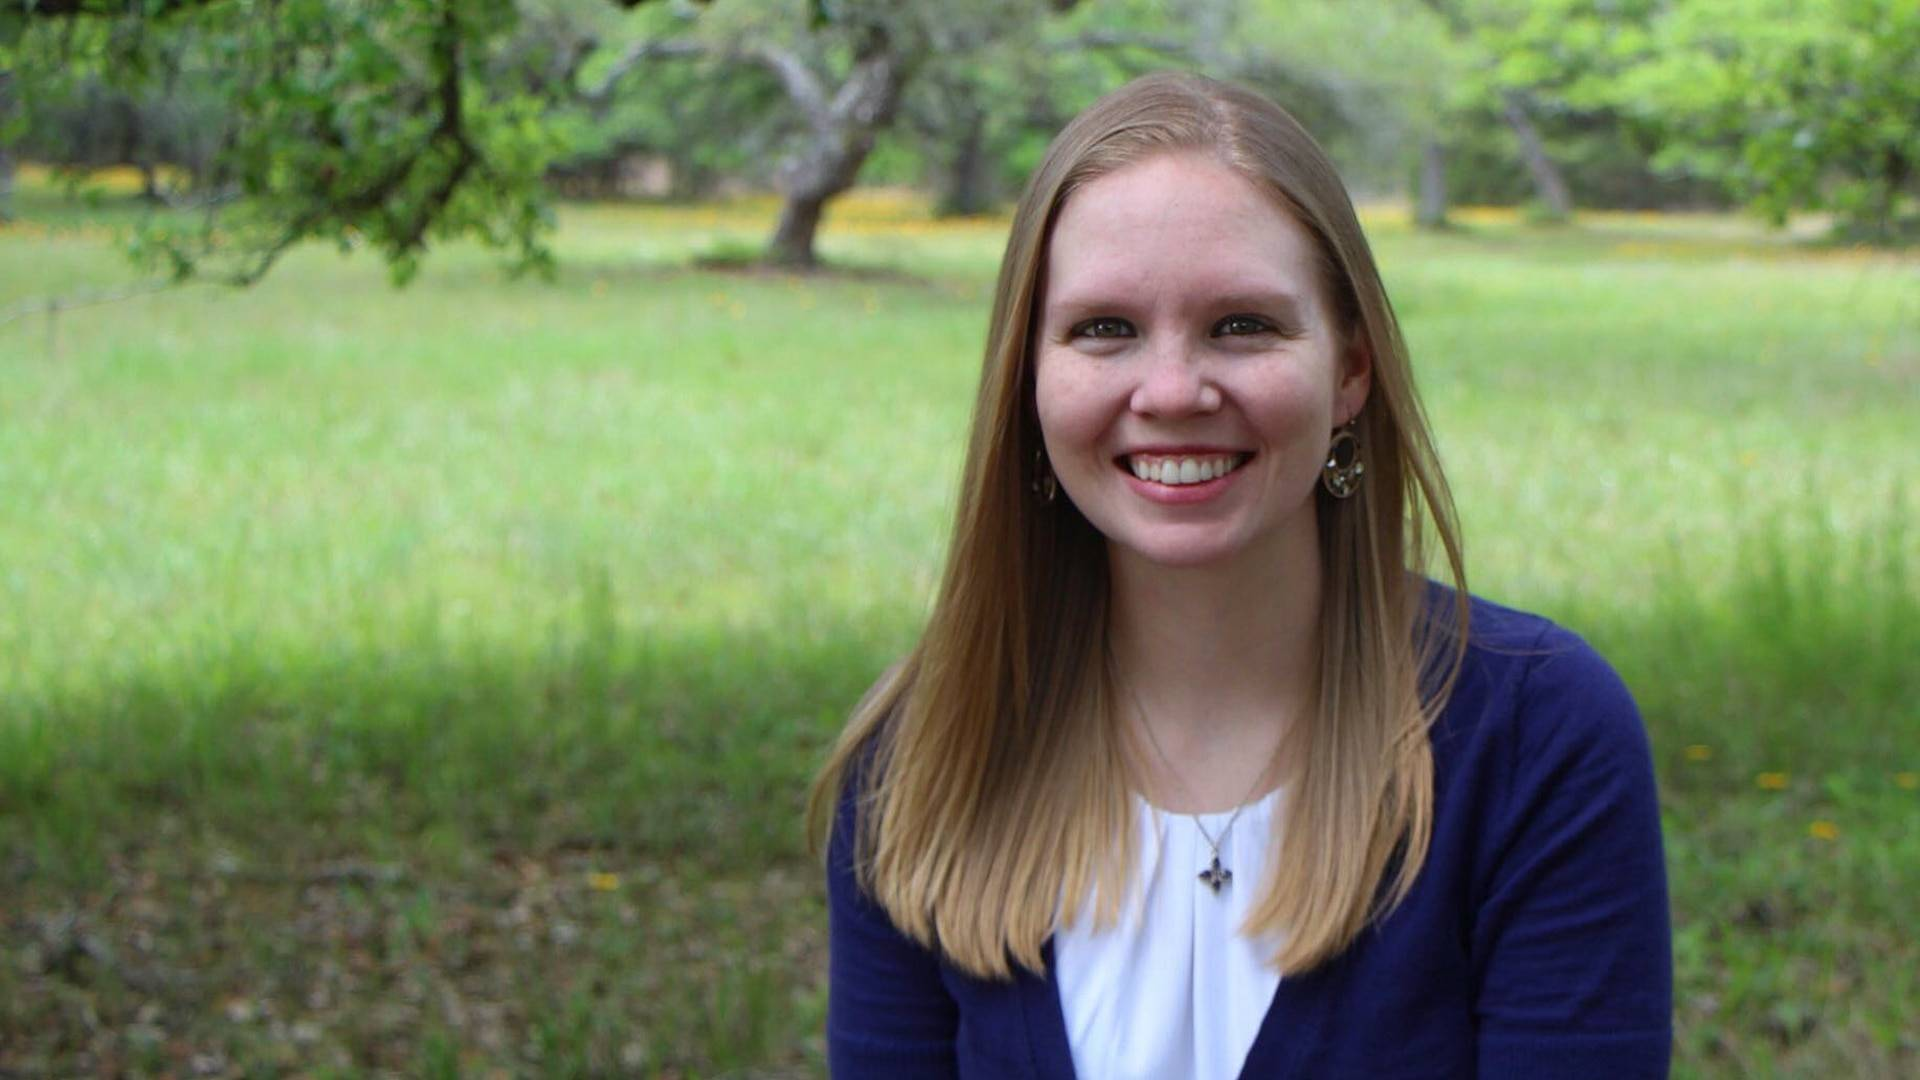 Dr. Lisa Sublett